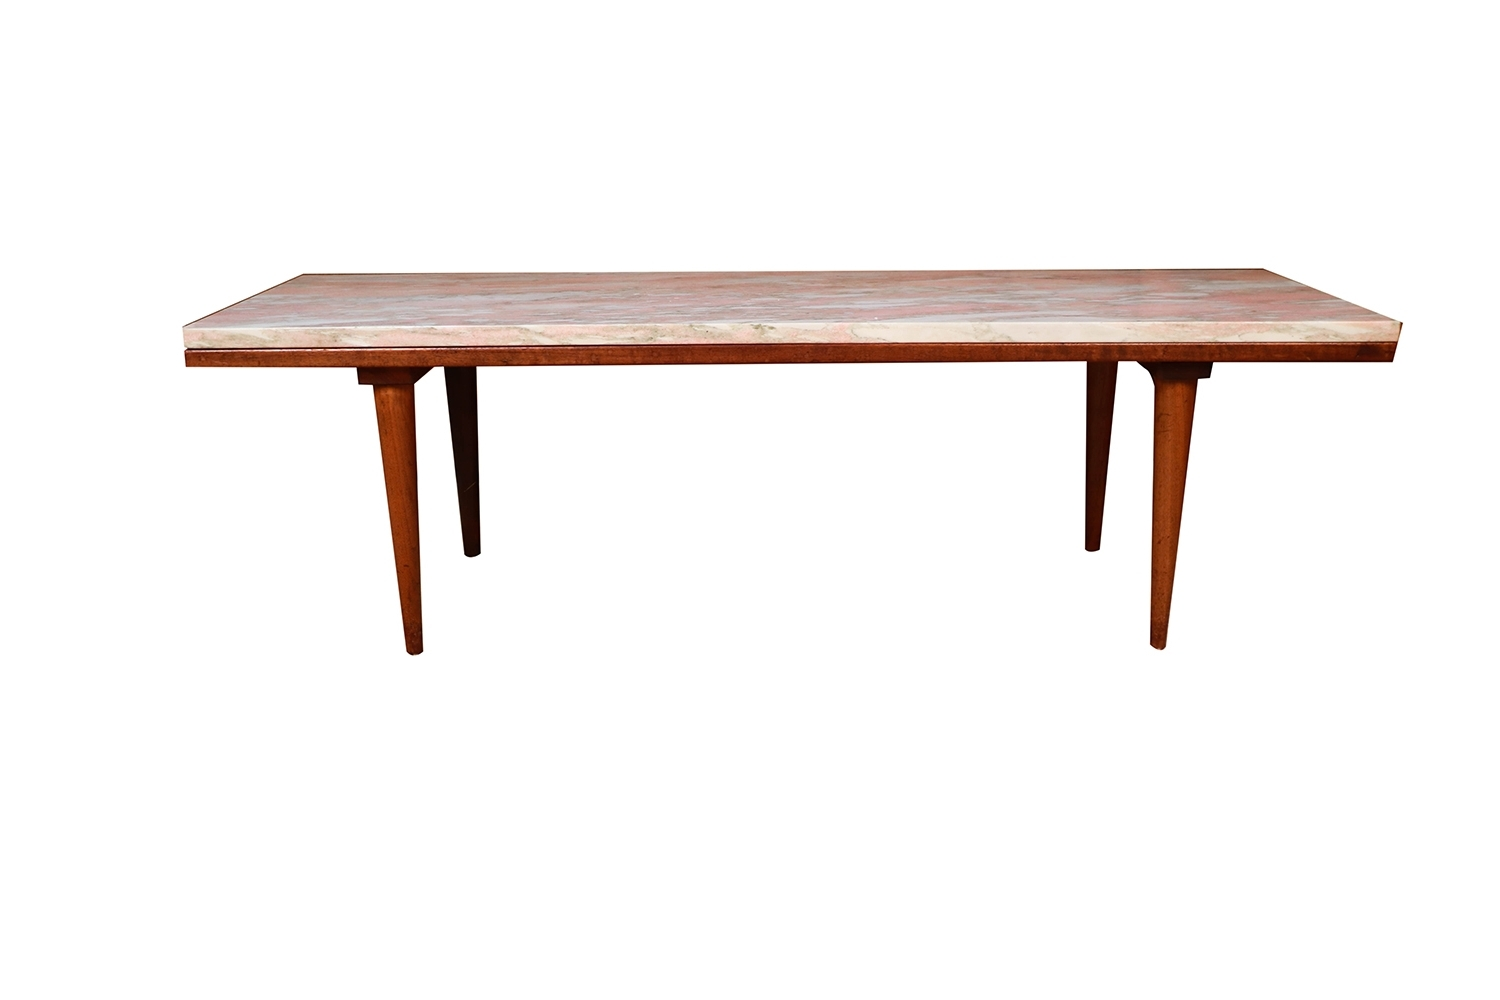 Mid Century Modern Marble Top Slat Bench Coffee Table – Intended For Widely Used Mid Century Modern Marble Coffee Tables (View 14 of 20)